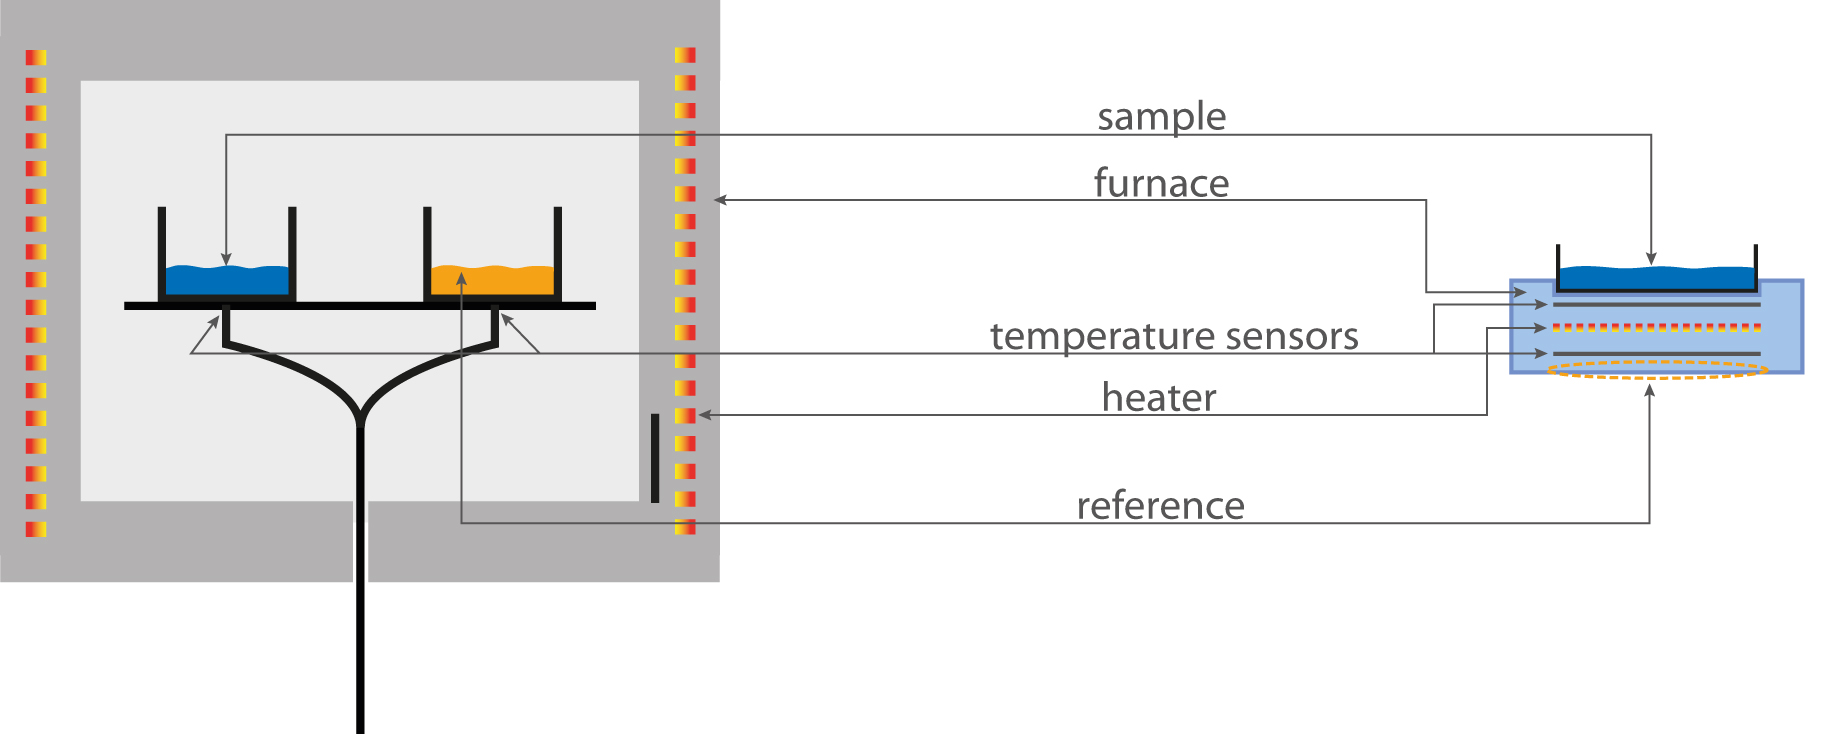 Chip Dsc 100 Linseis Messgerte Gmbh Chemical Furnace Schematic